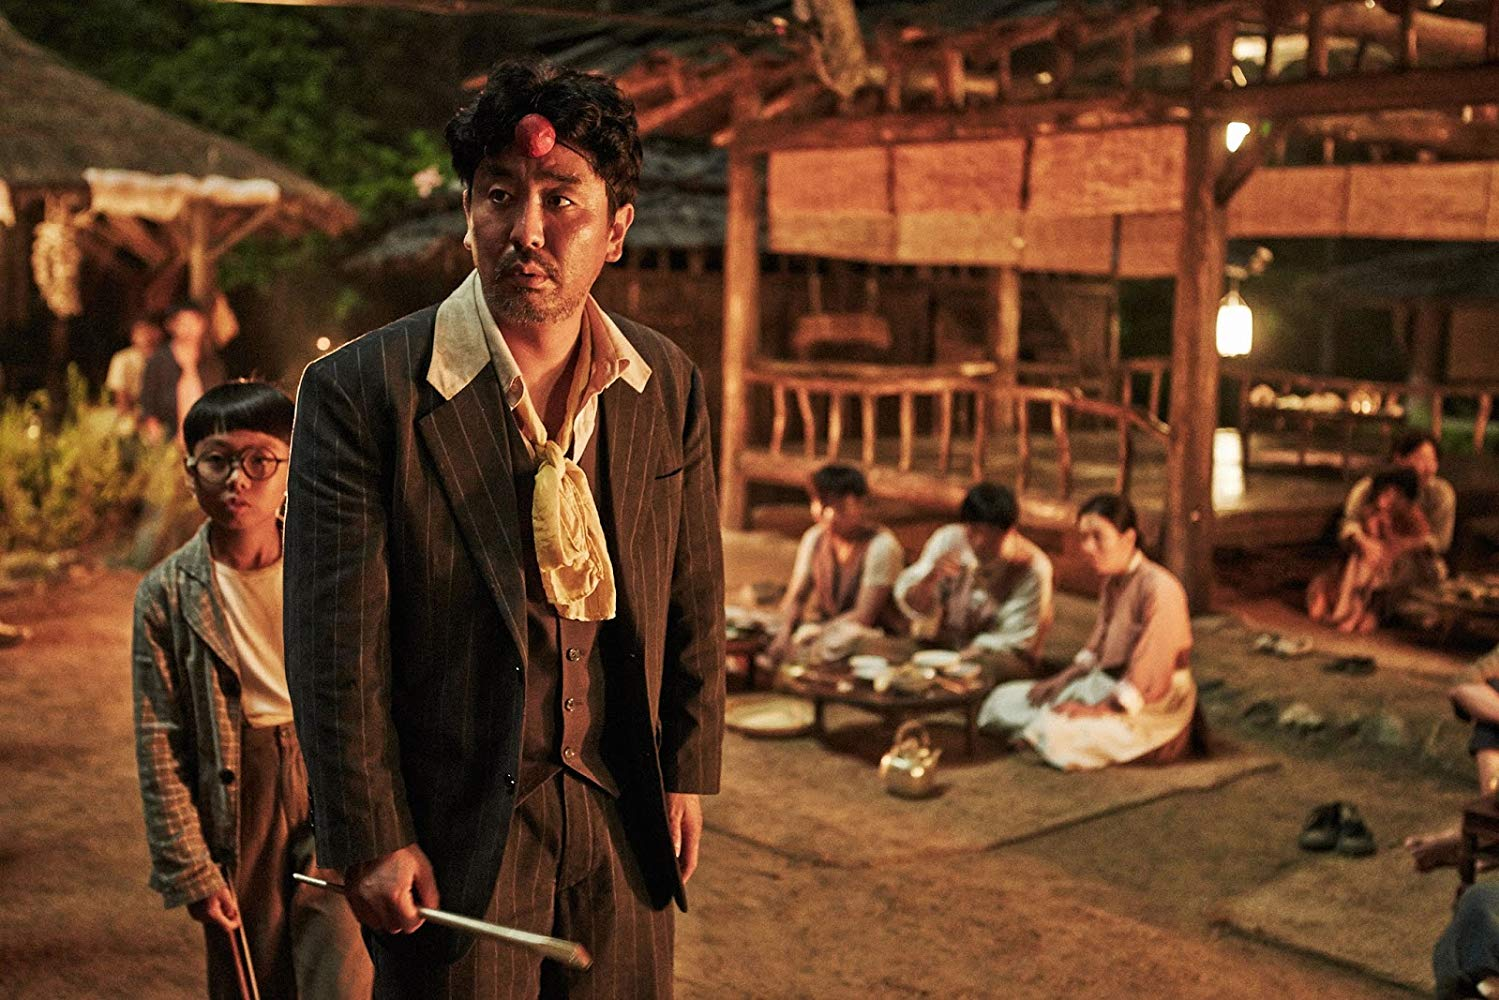 The Piper (Ryoo Seung-Ryong) and his son (Goo Seung-Hyeon) in The Piper (2015)